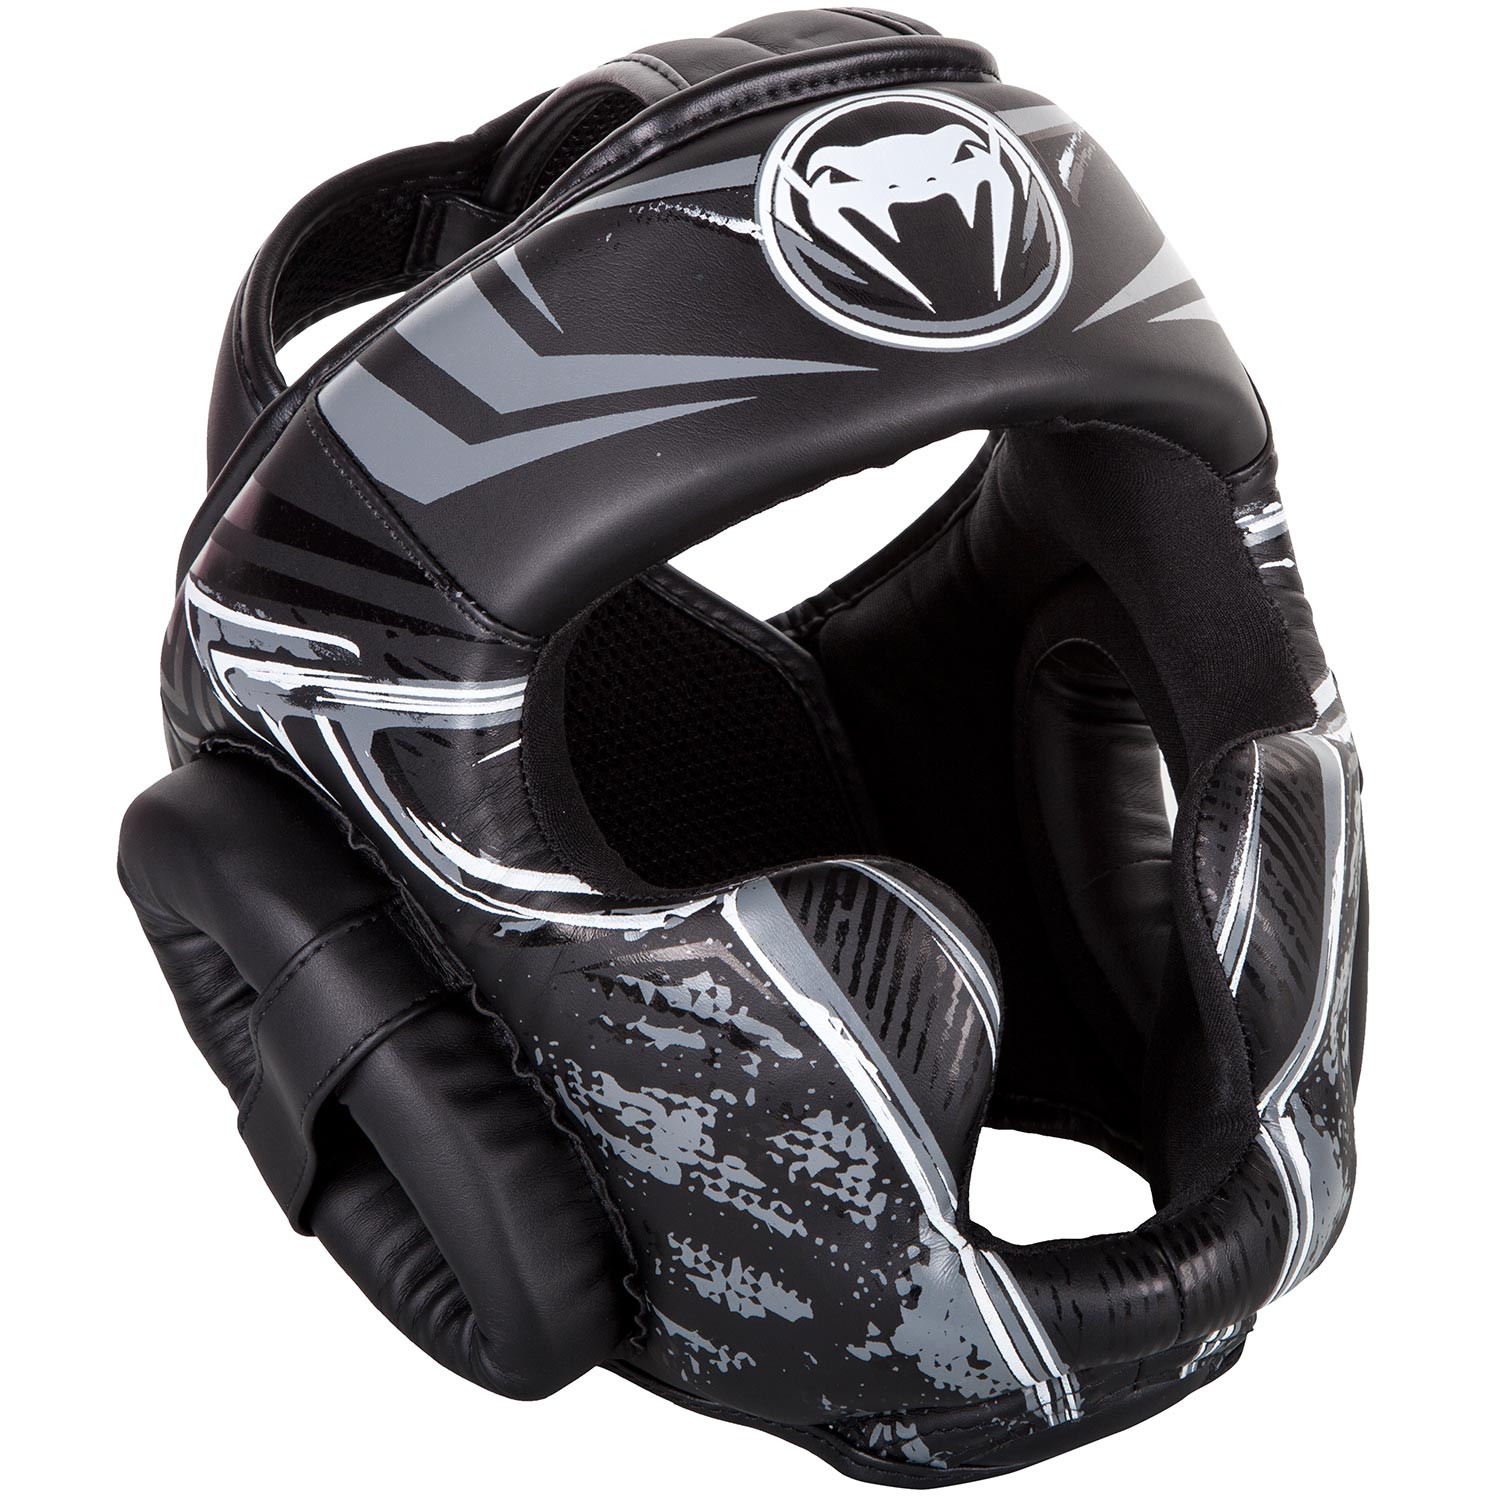 Купить Шлем Venum Gladiator 3.0 Headgear - BlackWhite, 4936_bk_gy